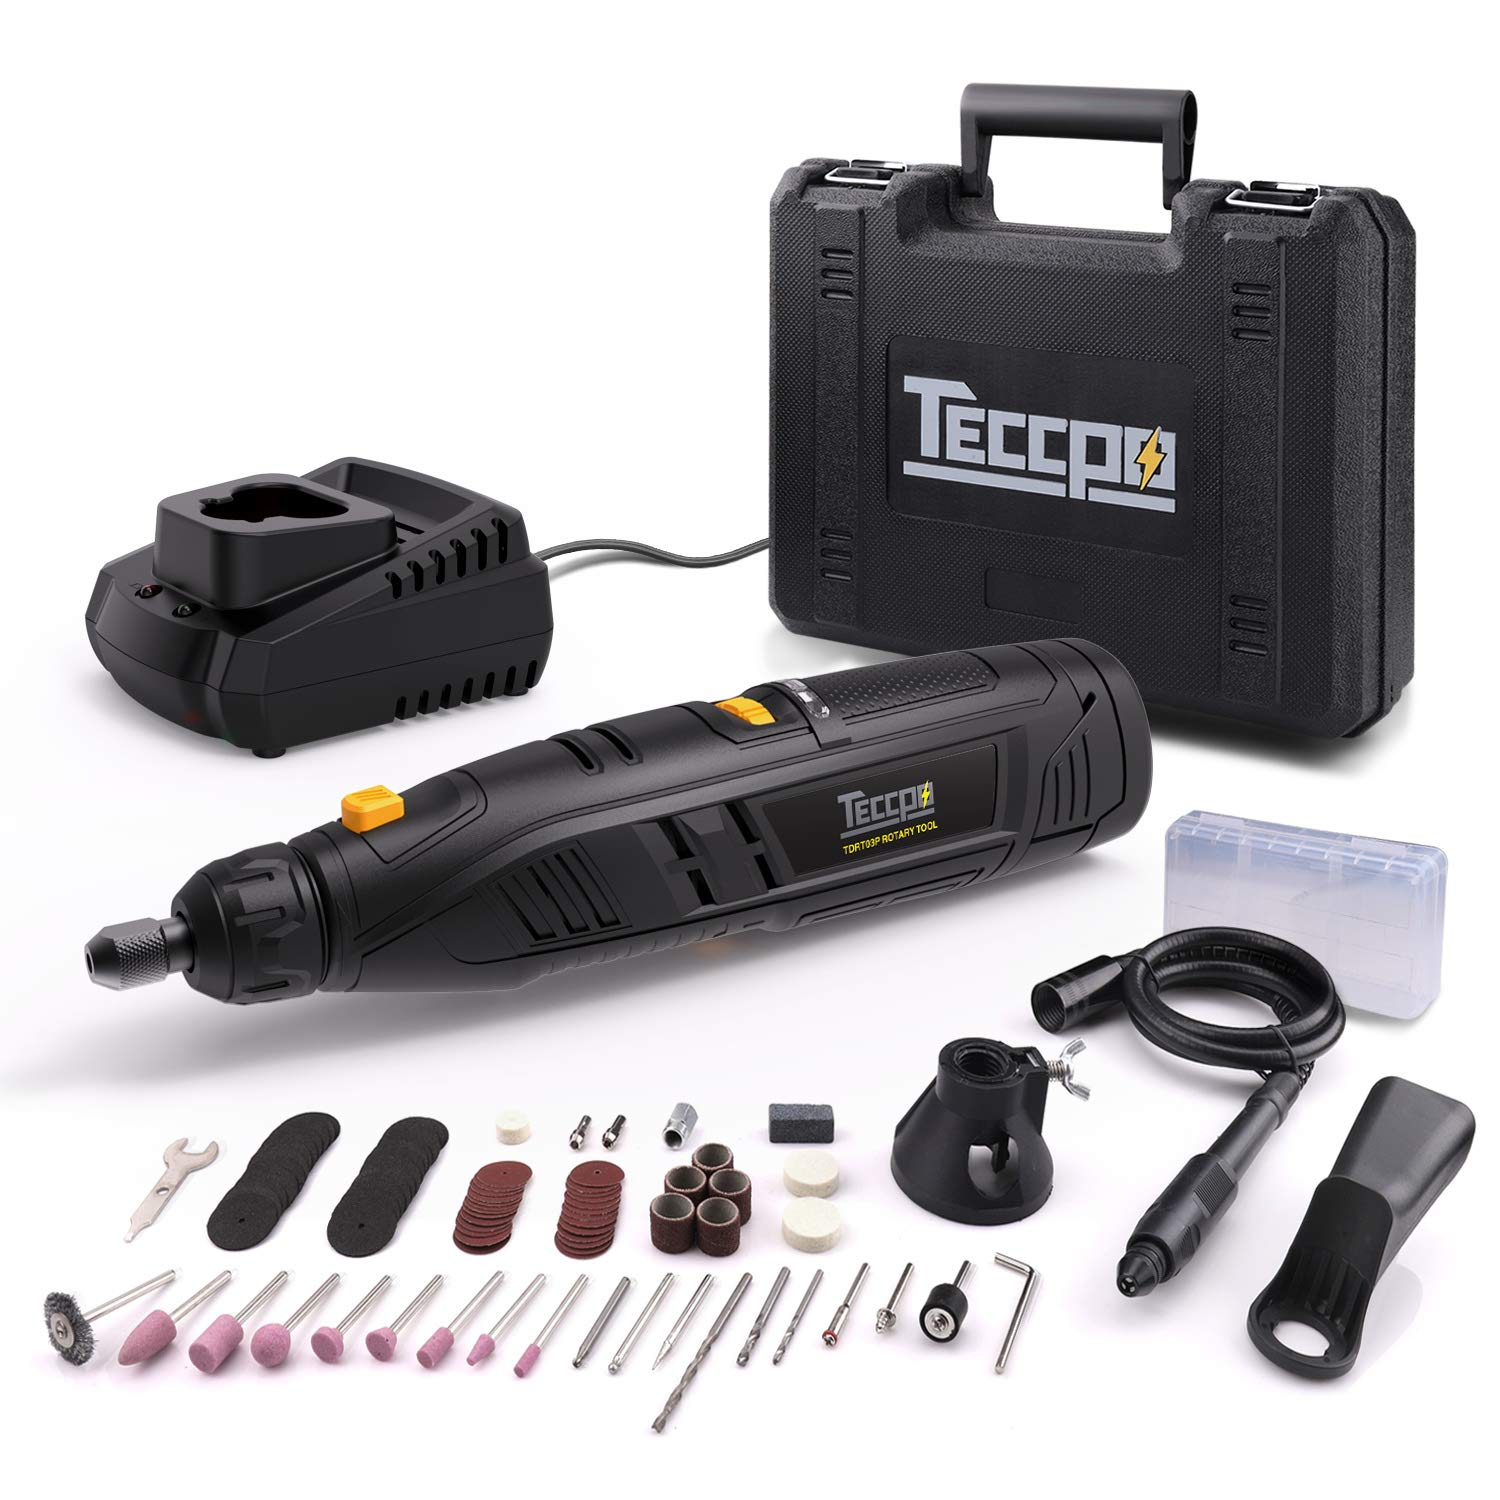 Rotary Tool TECCPO 12-Volt 2.0Ah Li Power Pack with 80pcs Accessories Variable Speed Multi-tool for Around-the-House, Crafting Projects and Fine Work TDRT03P